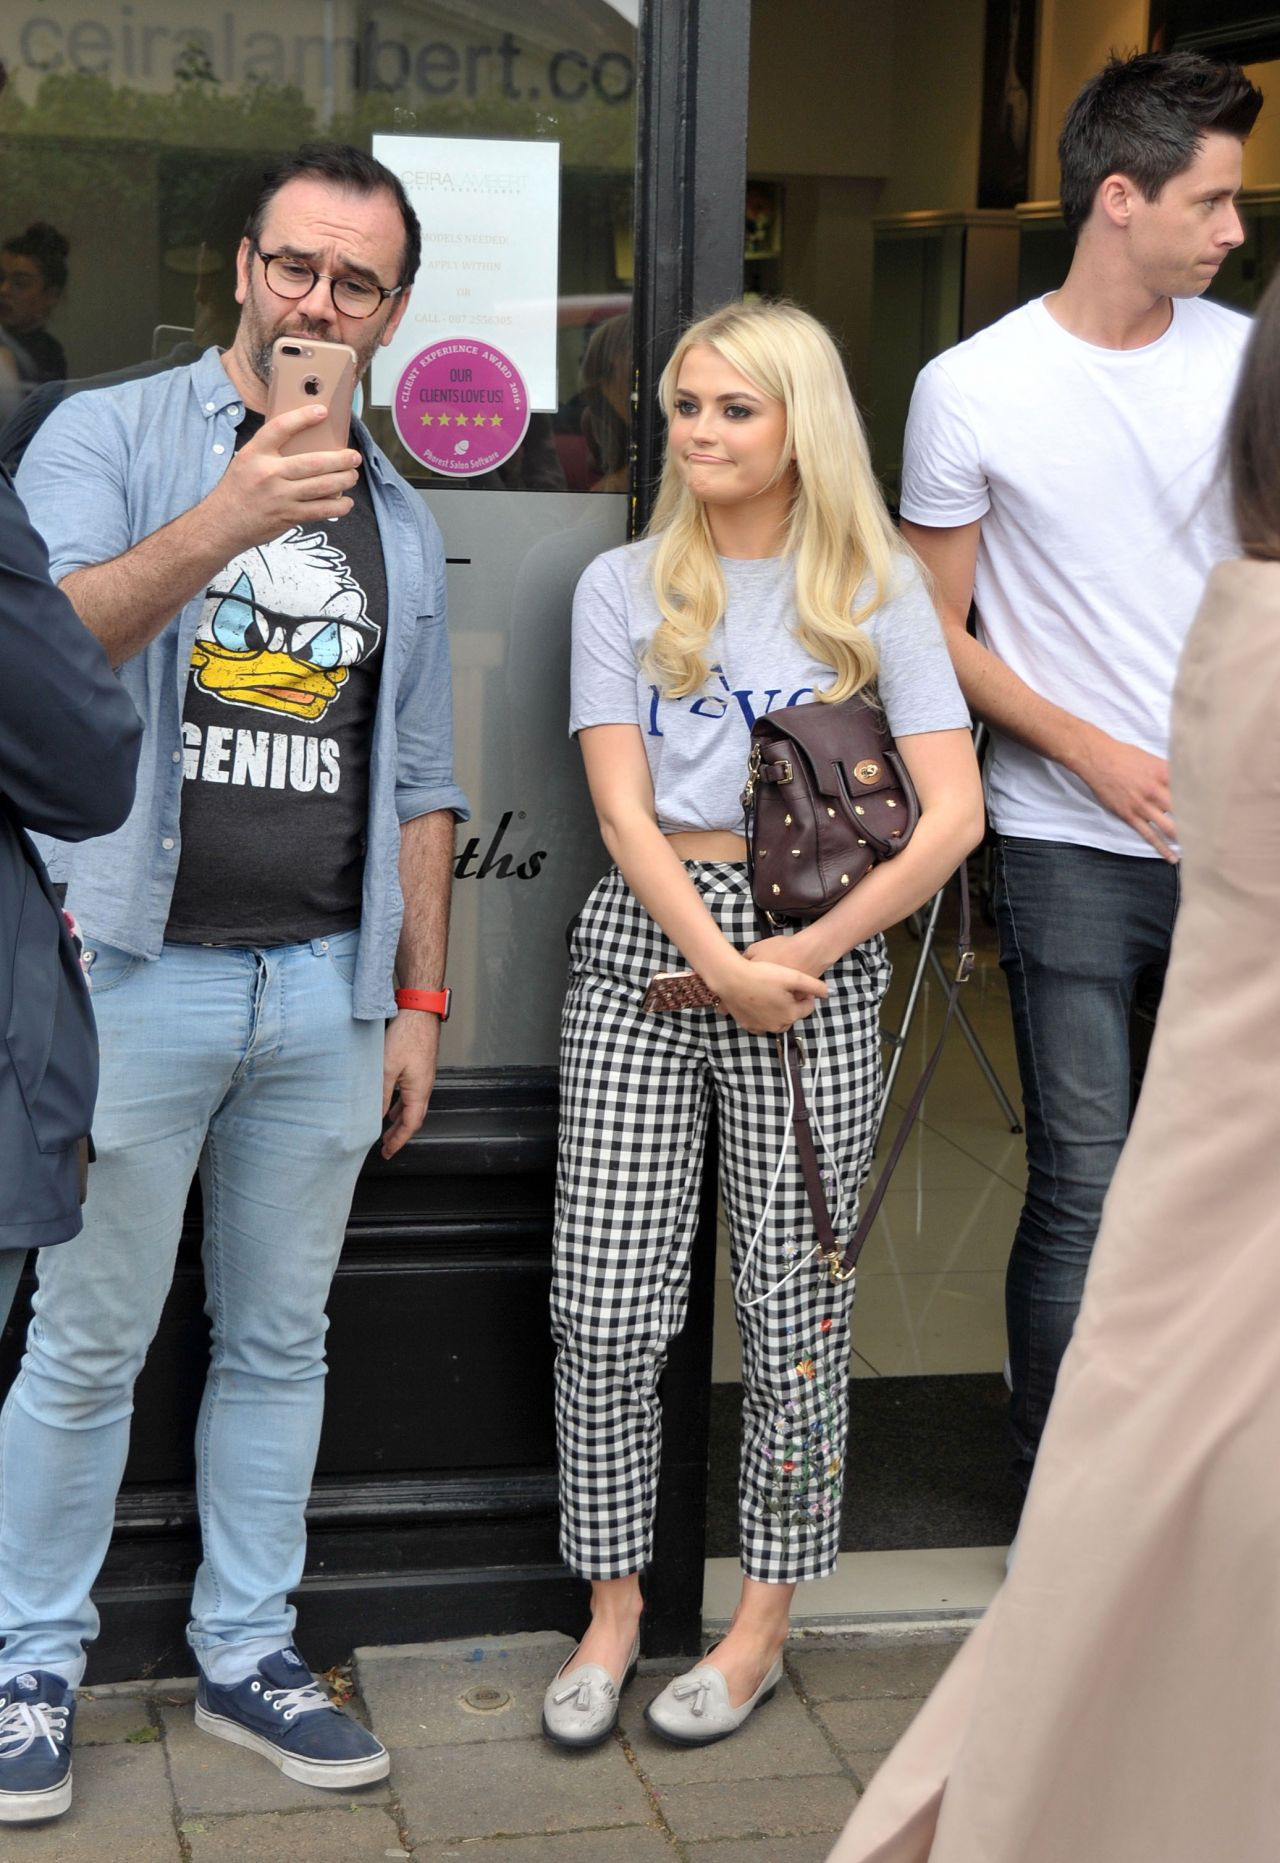 lucy-fallon-cute-style-at-ceira-lamberts-hair-salon-in-shankill-village-dublin-06-17-2017-10.jpg (1280×1863)